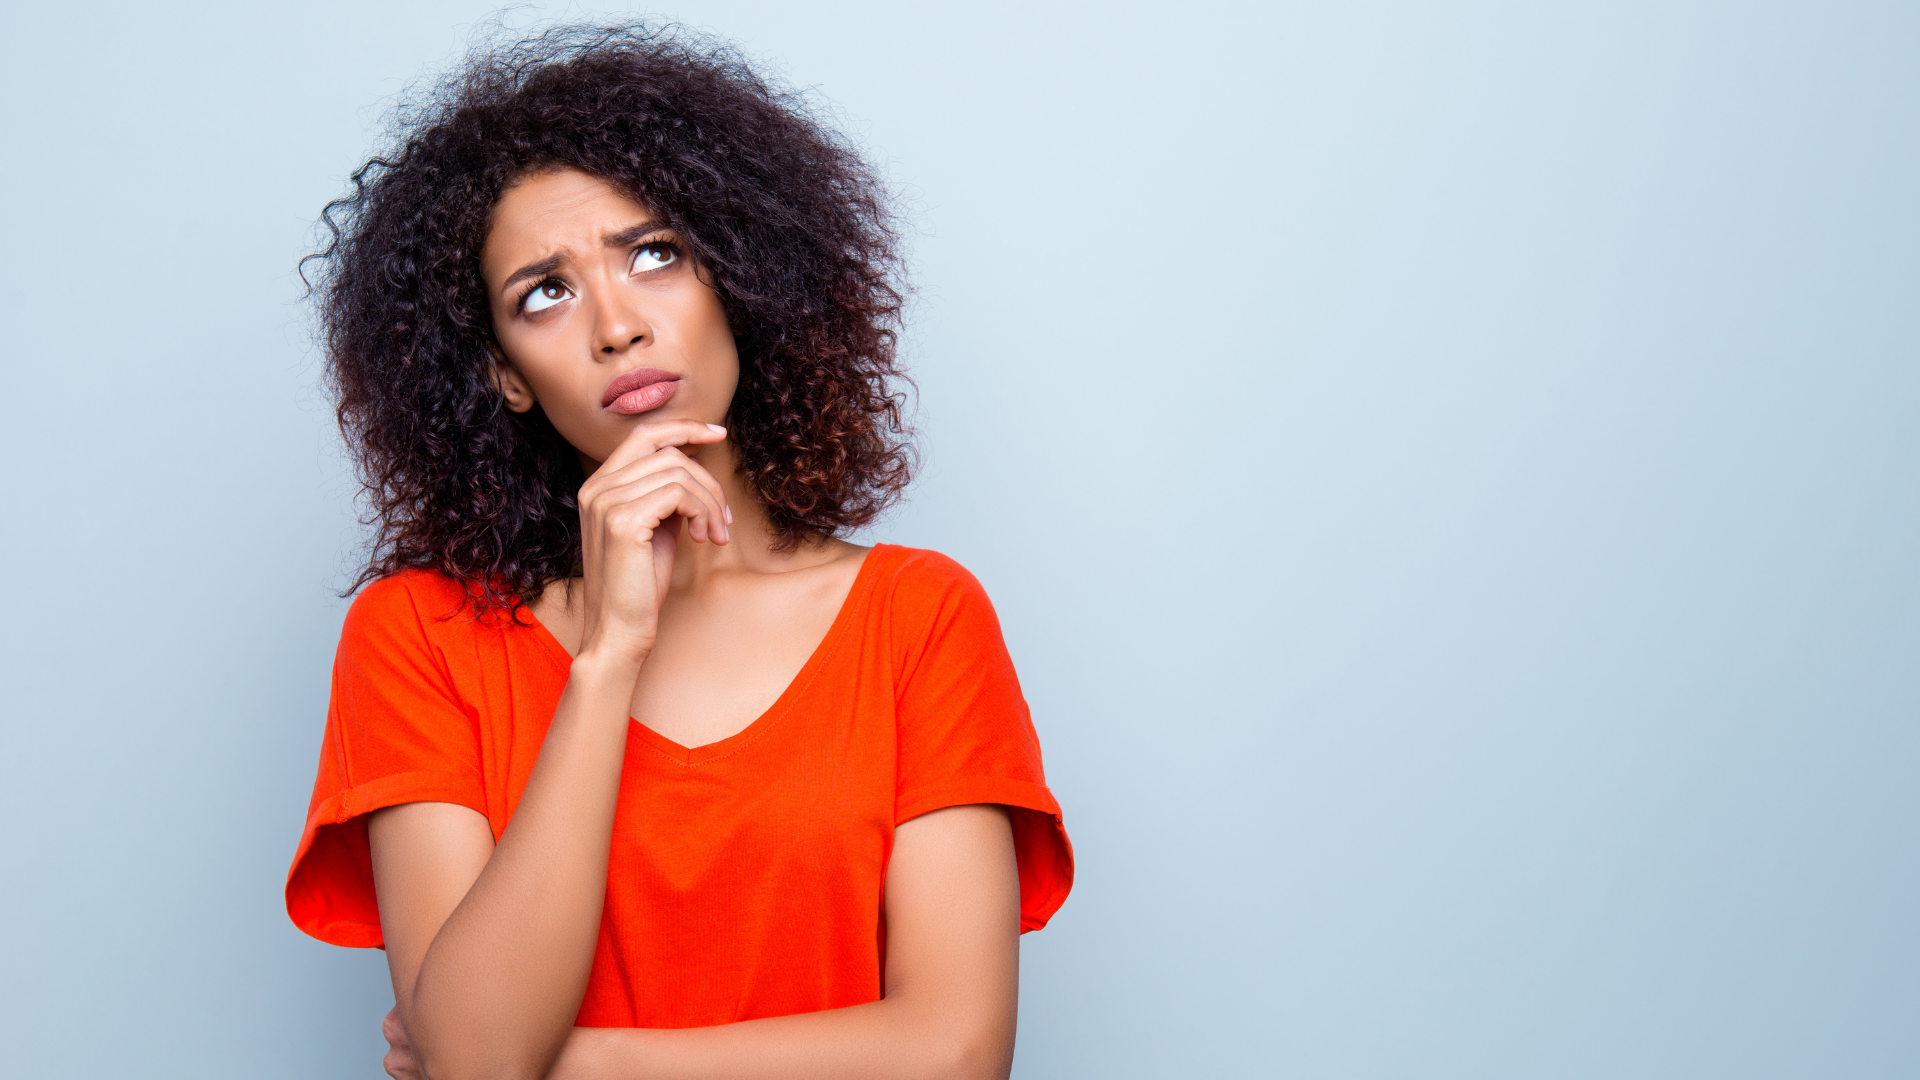 woman considering a counteroffer